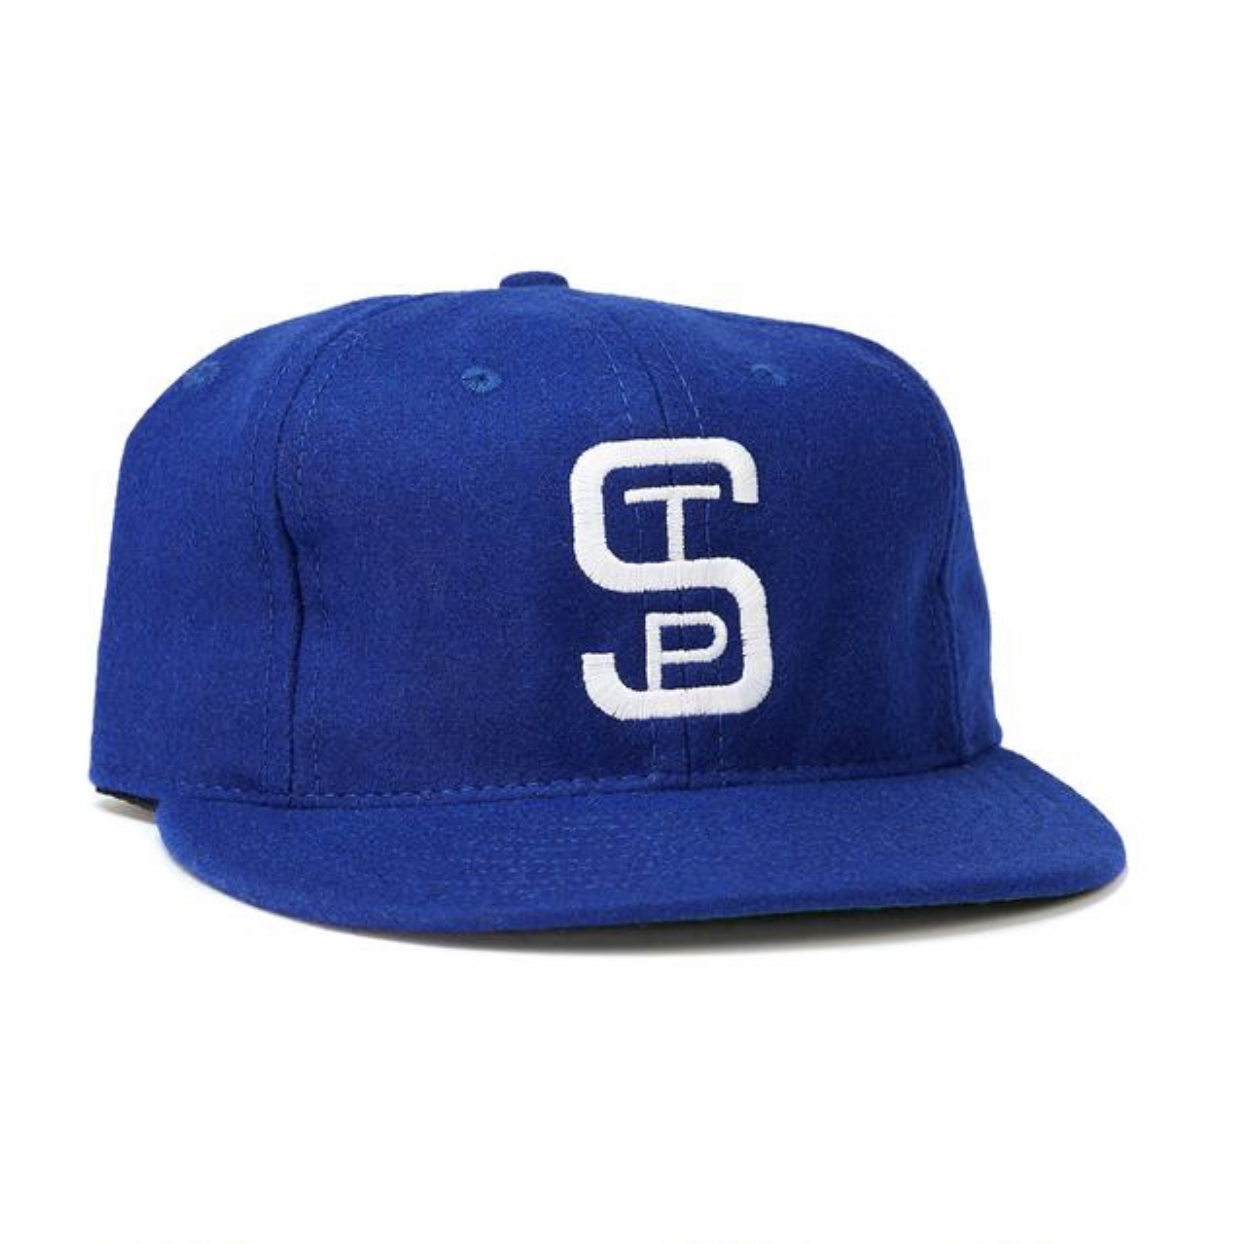 Ebbets - They have a knack for making you wear a hat for a team you've never heard of.